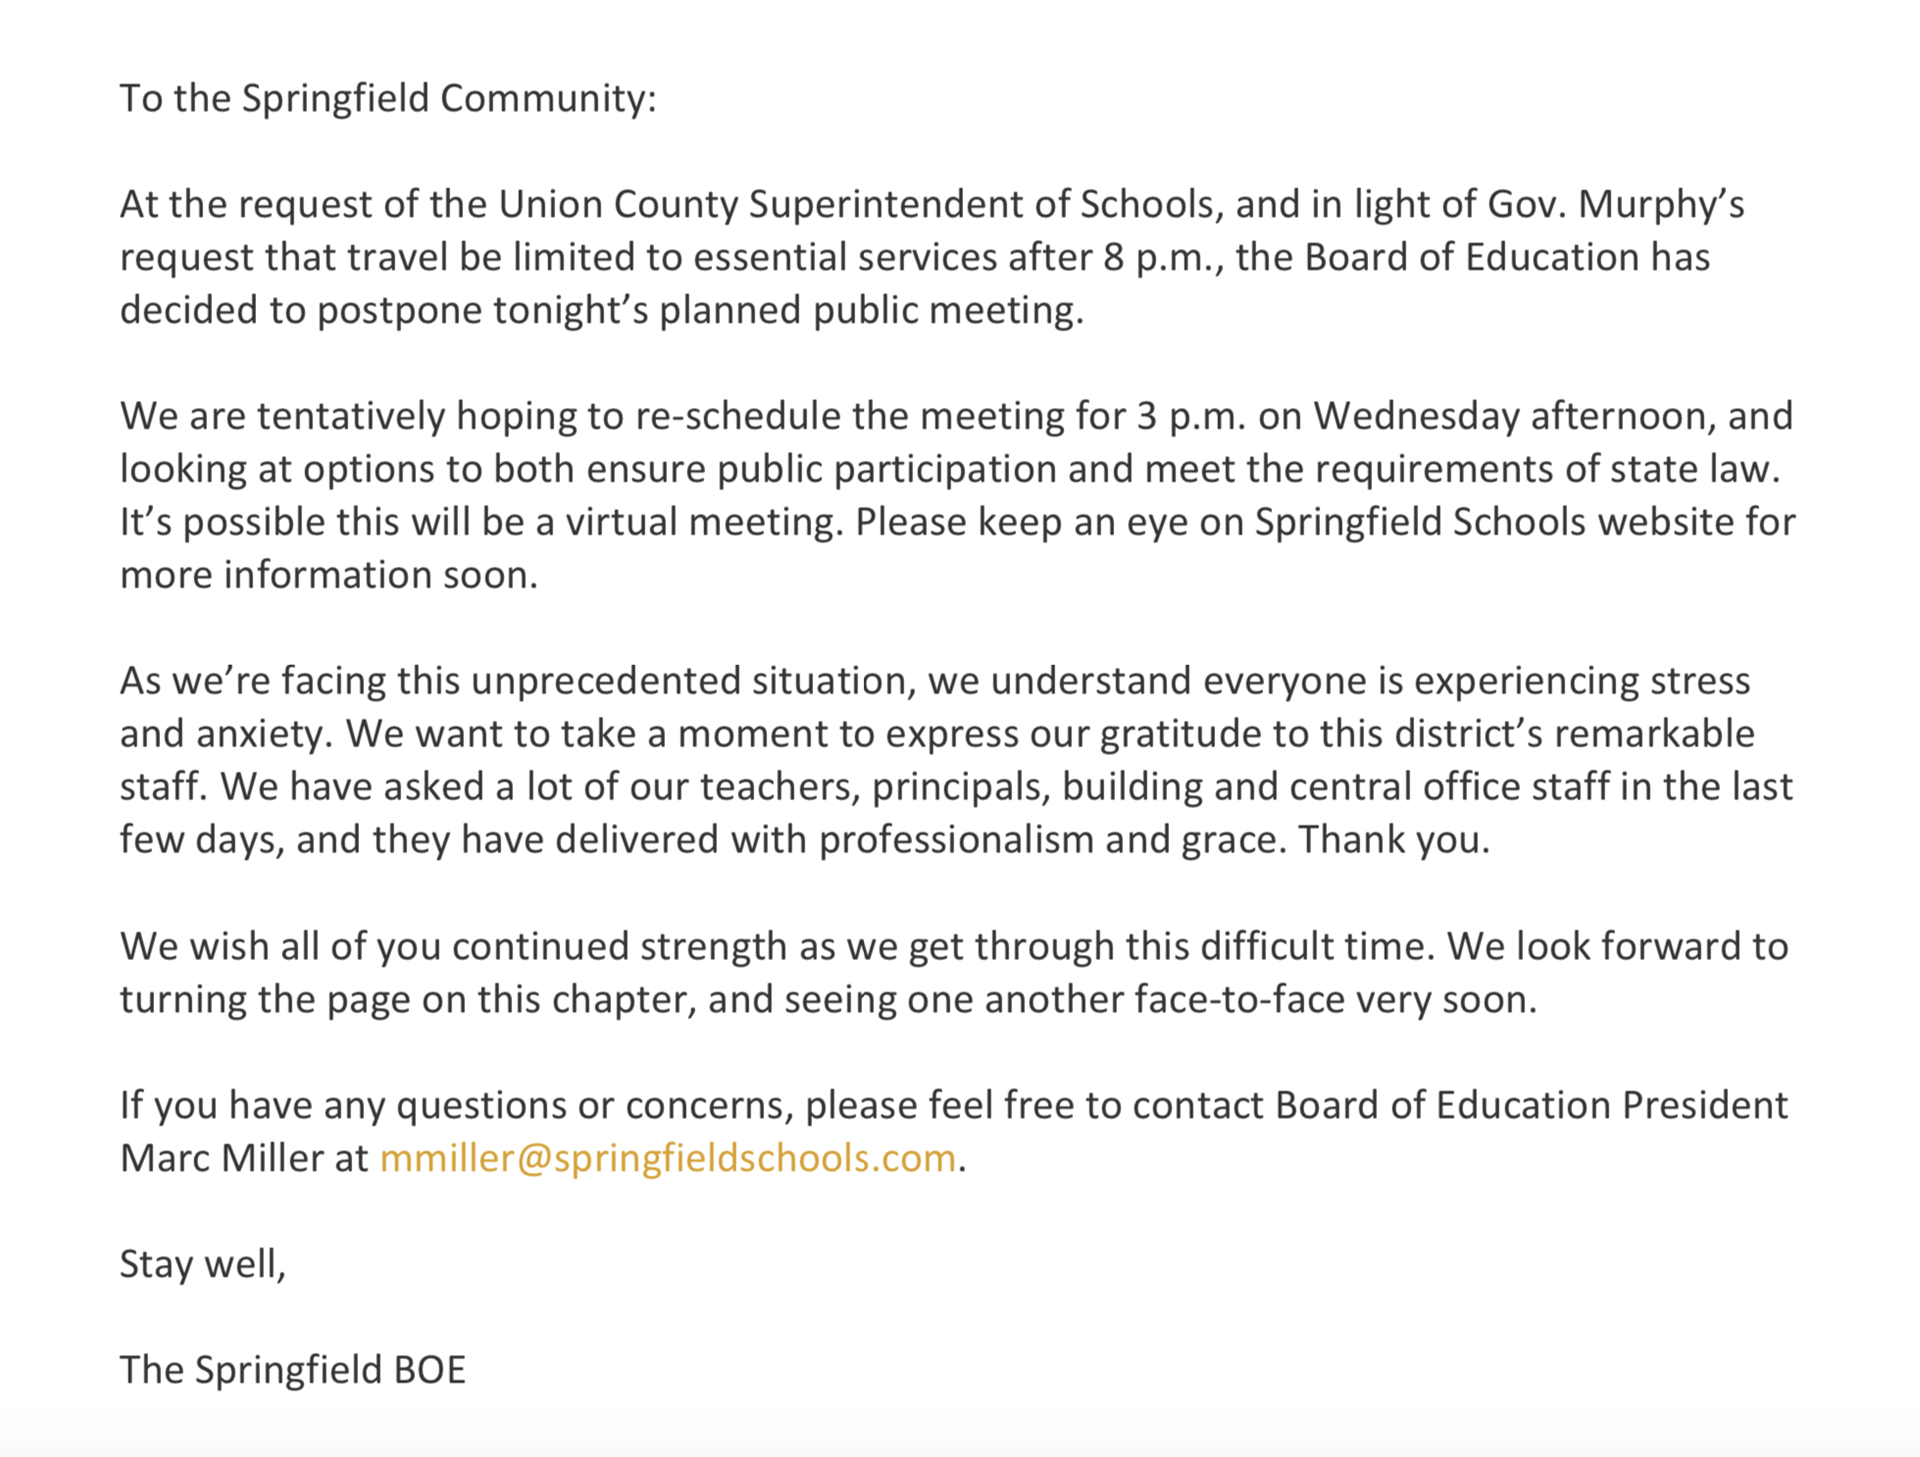 BOE Meeting Moved to 3PM Wednesday, March 18, 2020